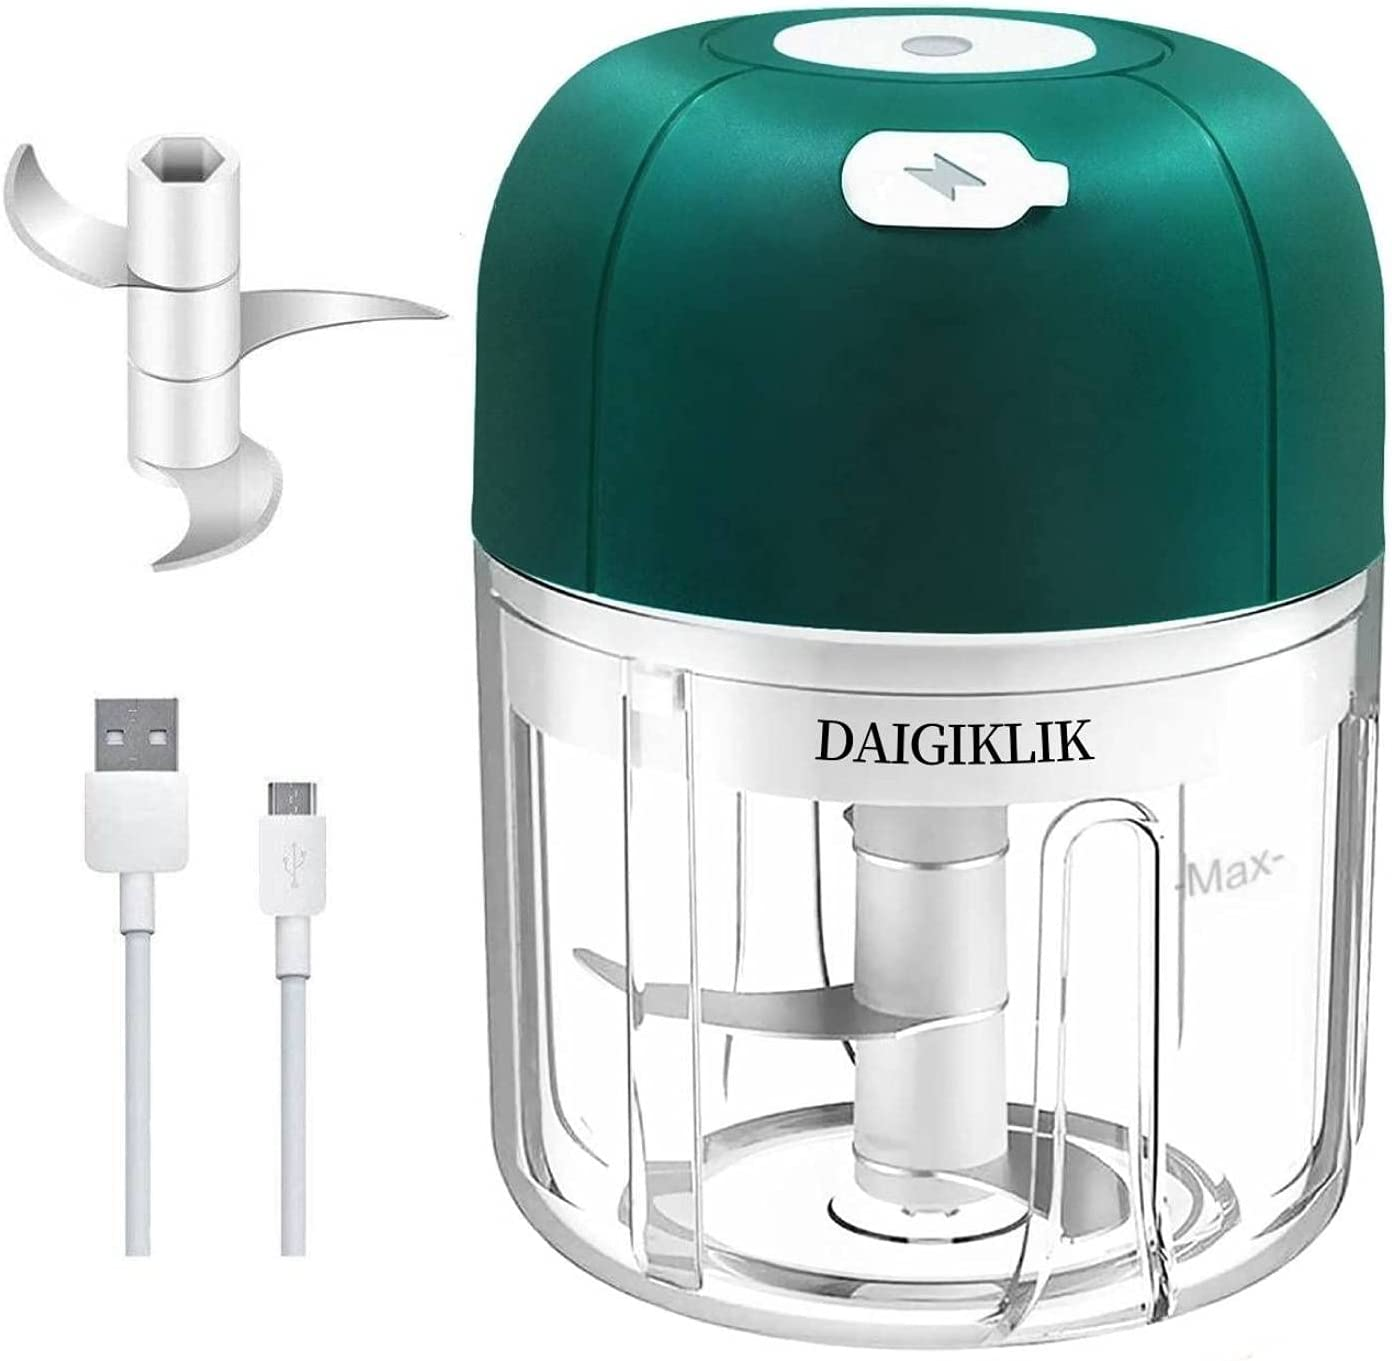 Electric Garlic Chopper (Green,250ML)Mini Wireless Portable Food Processor Chopper, Garlic Spice Fruits Vegetables Meats Rechargeable Mincer for Kitchen Restaurant